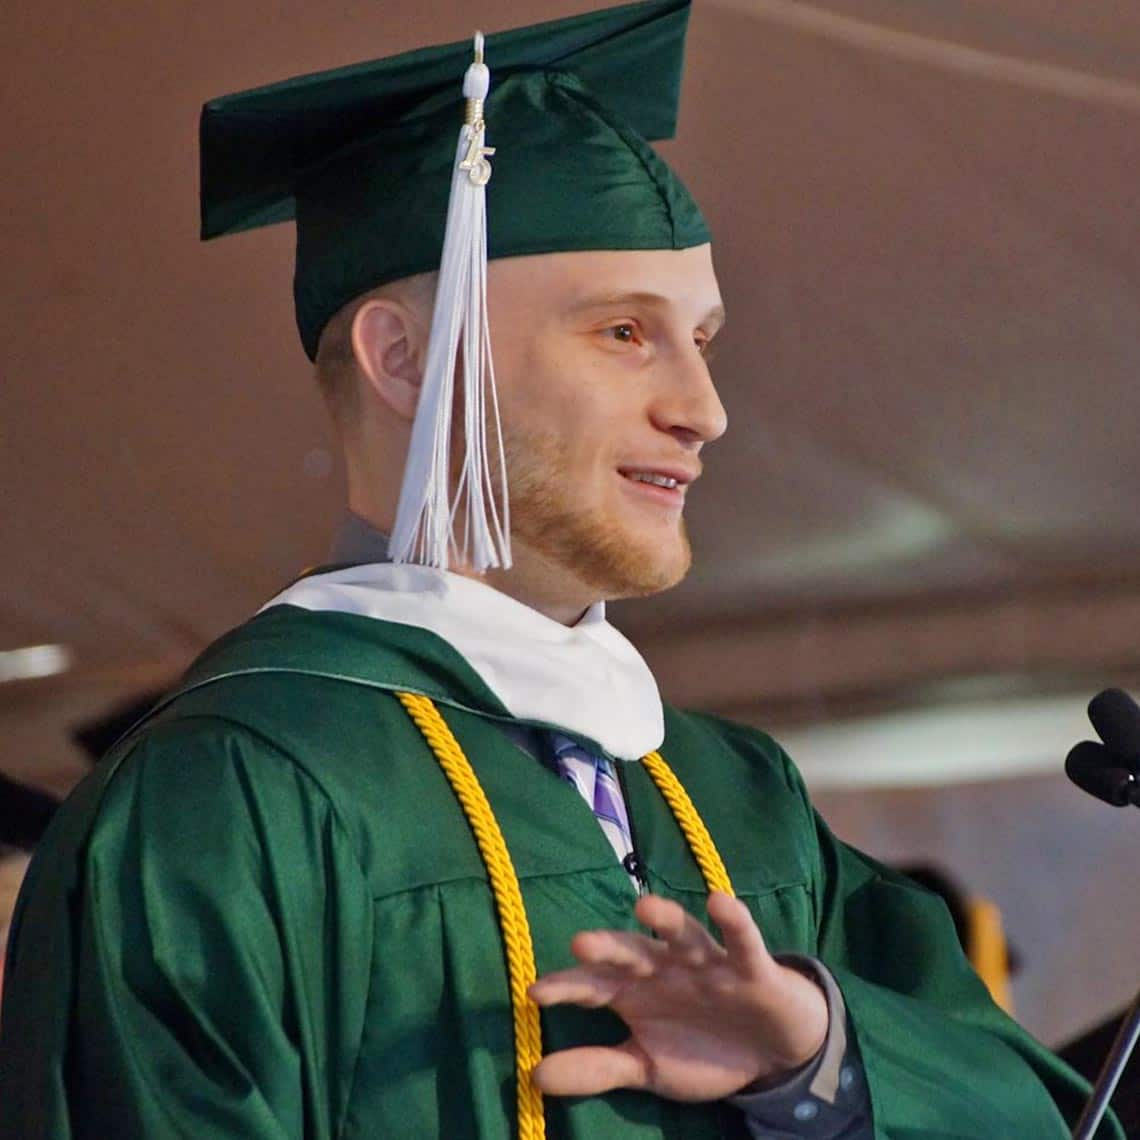 Michael graduated Valedictorian in 2015 with a BA in Political Science & later landed a job at Emory and Henry College